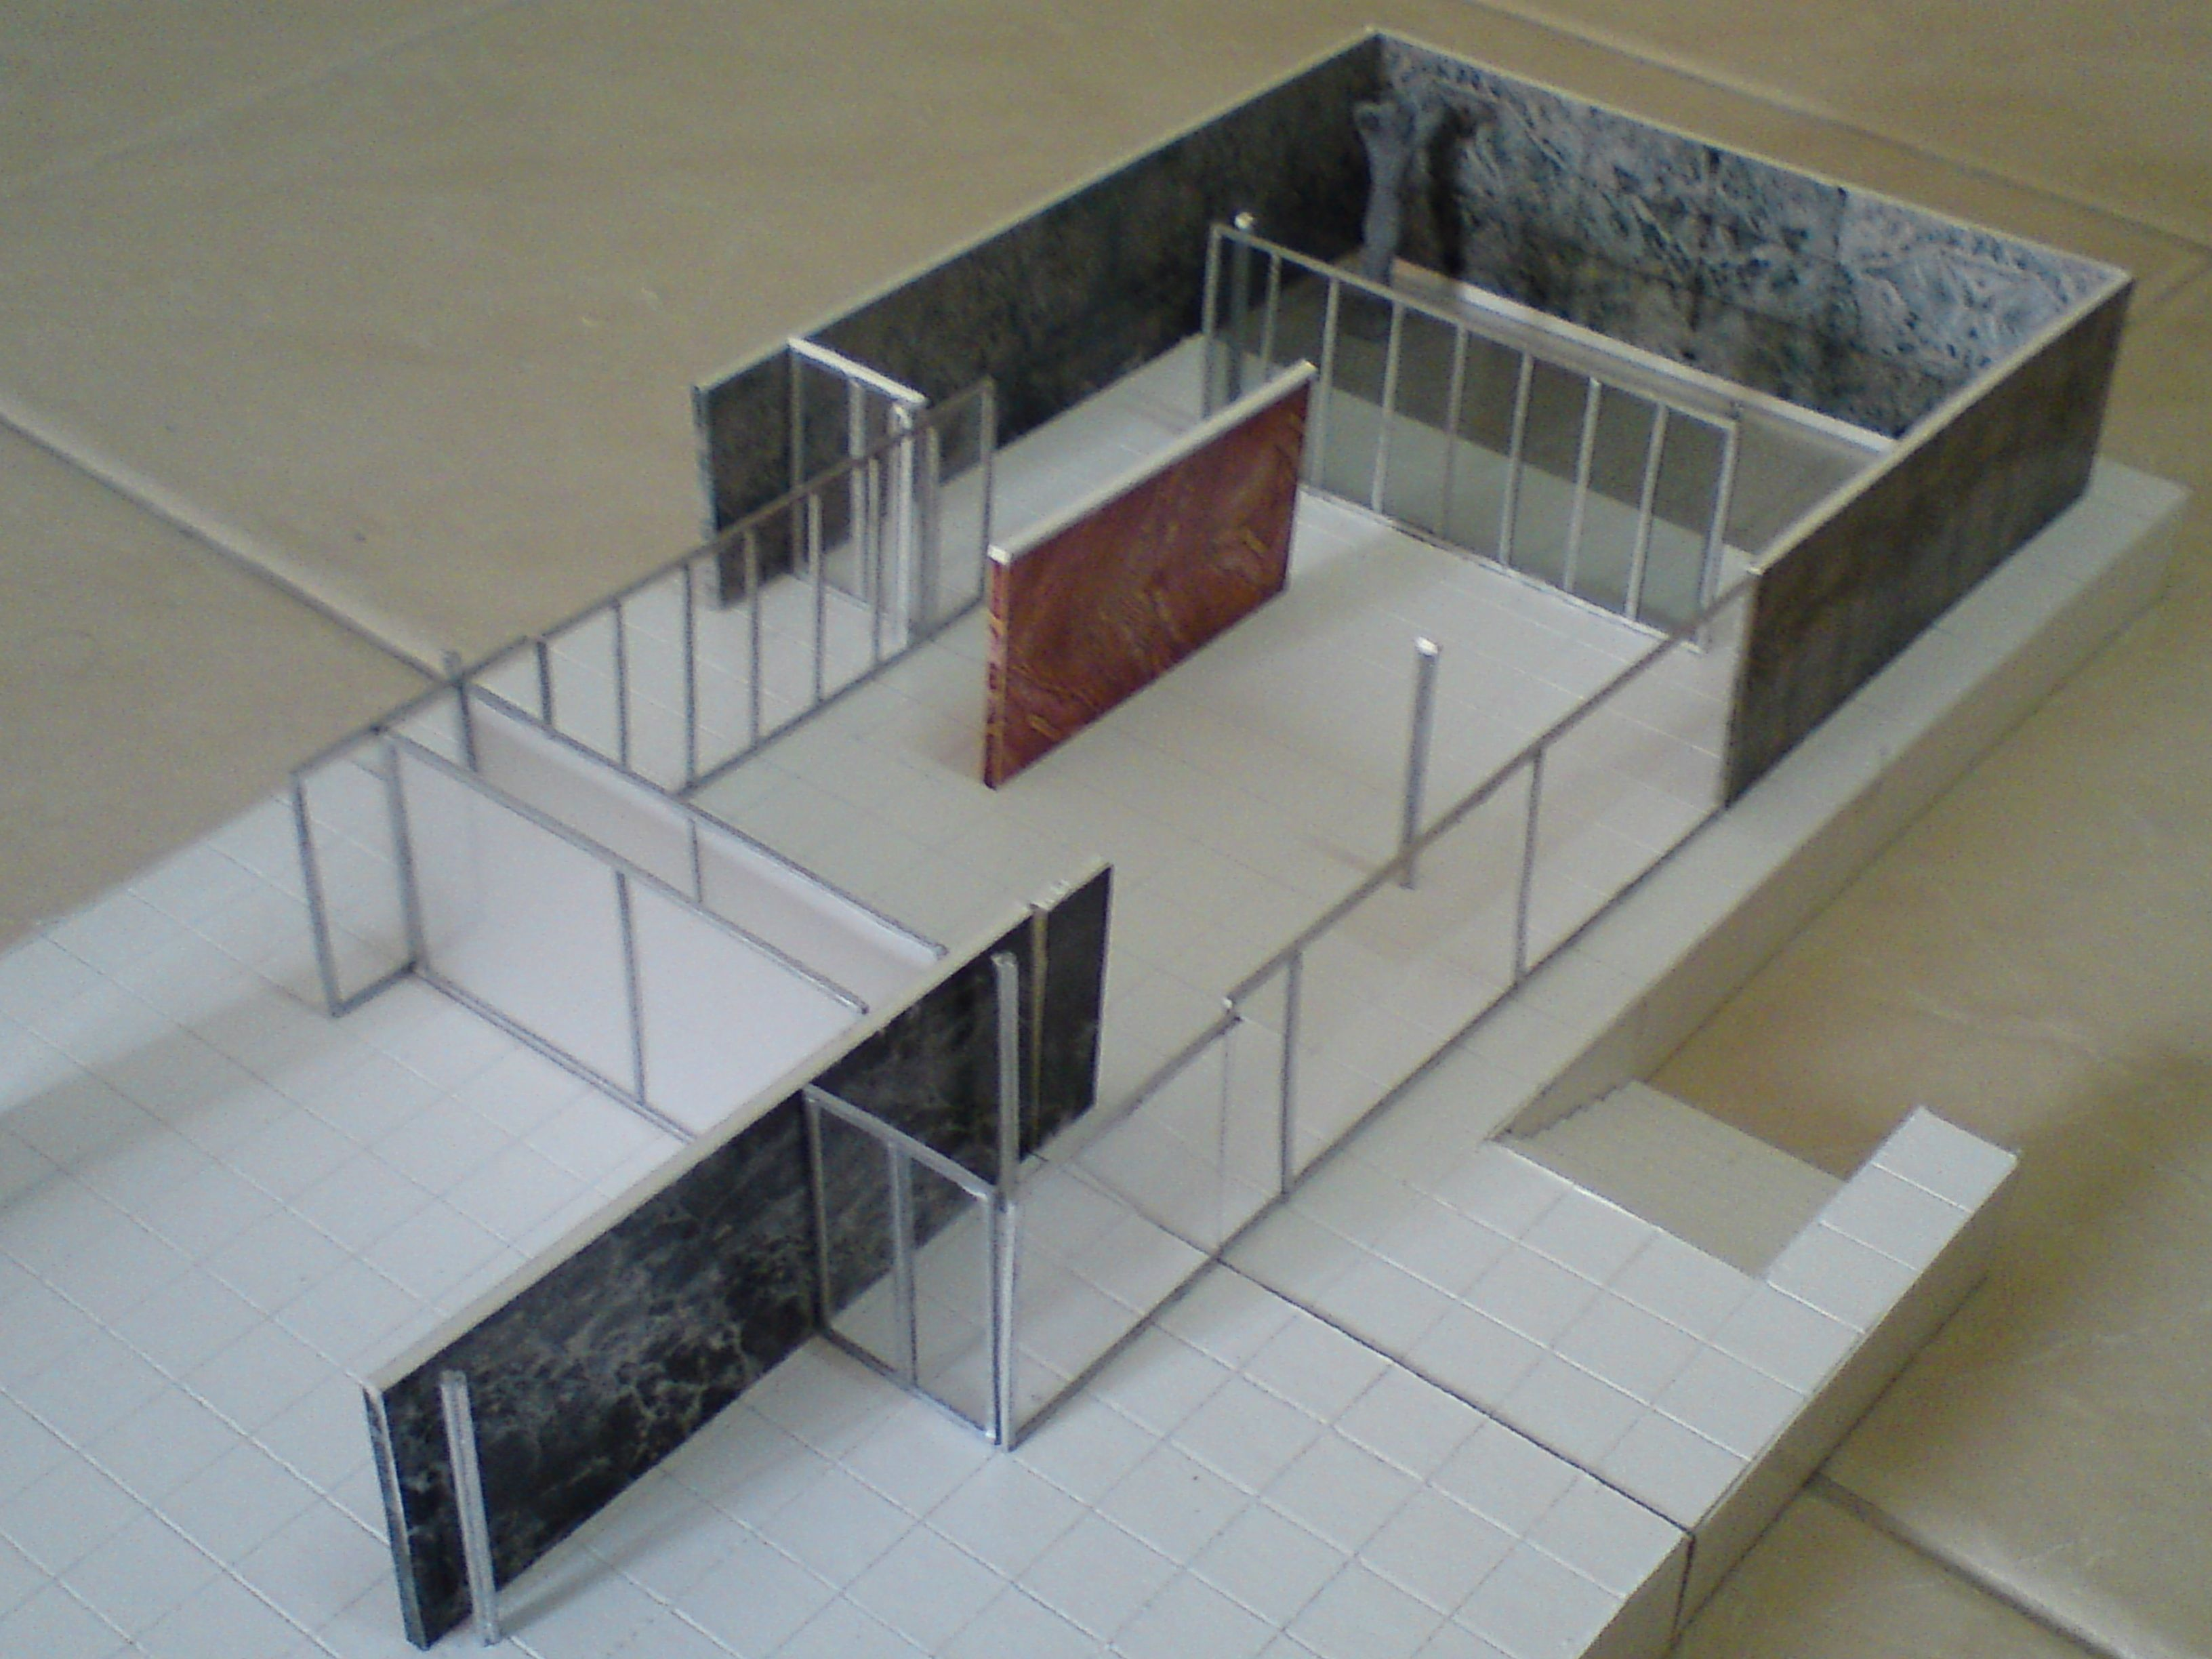 Barcelona Pavilion model | TownHaus 2015 | Pinterest ...